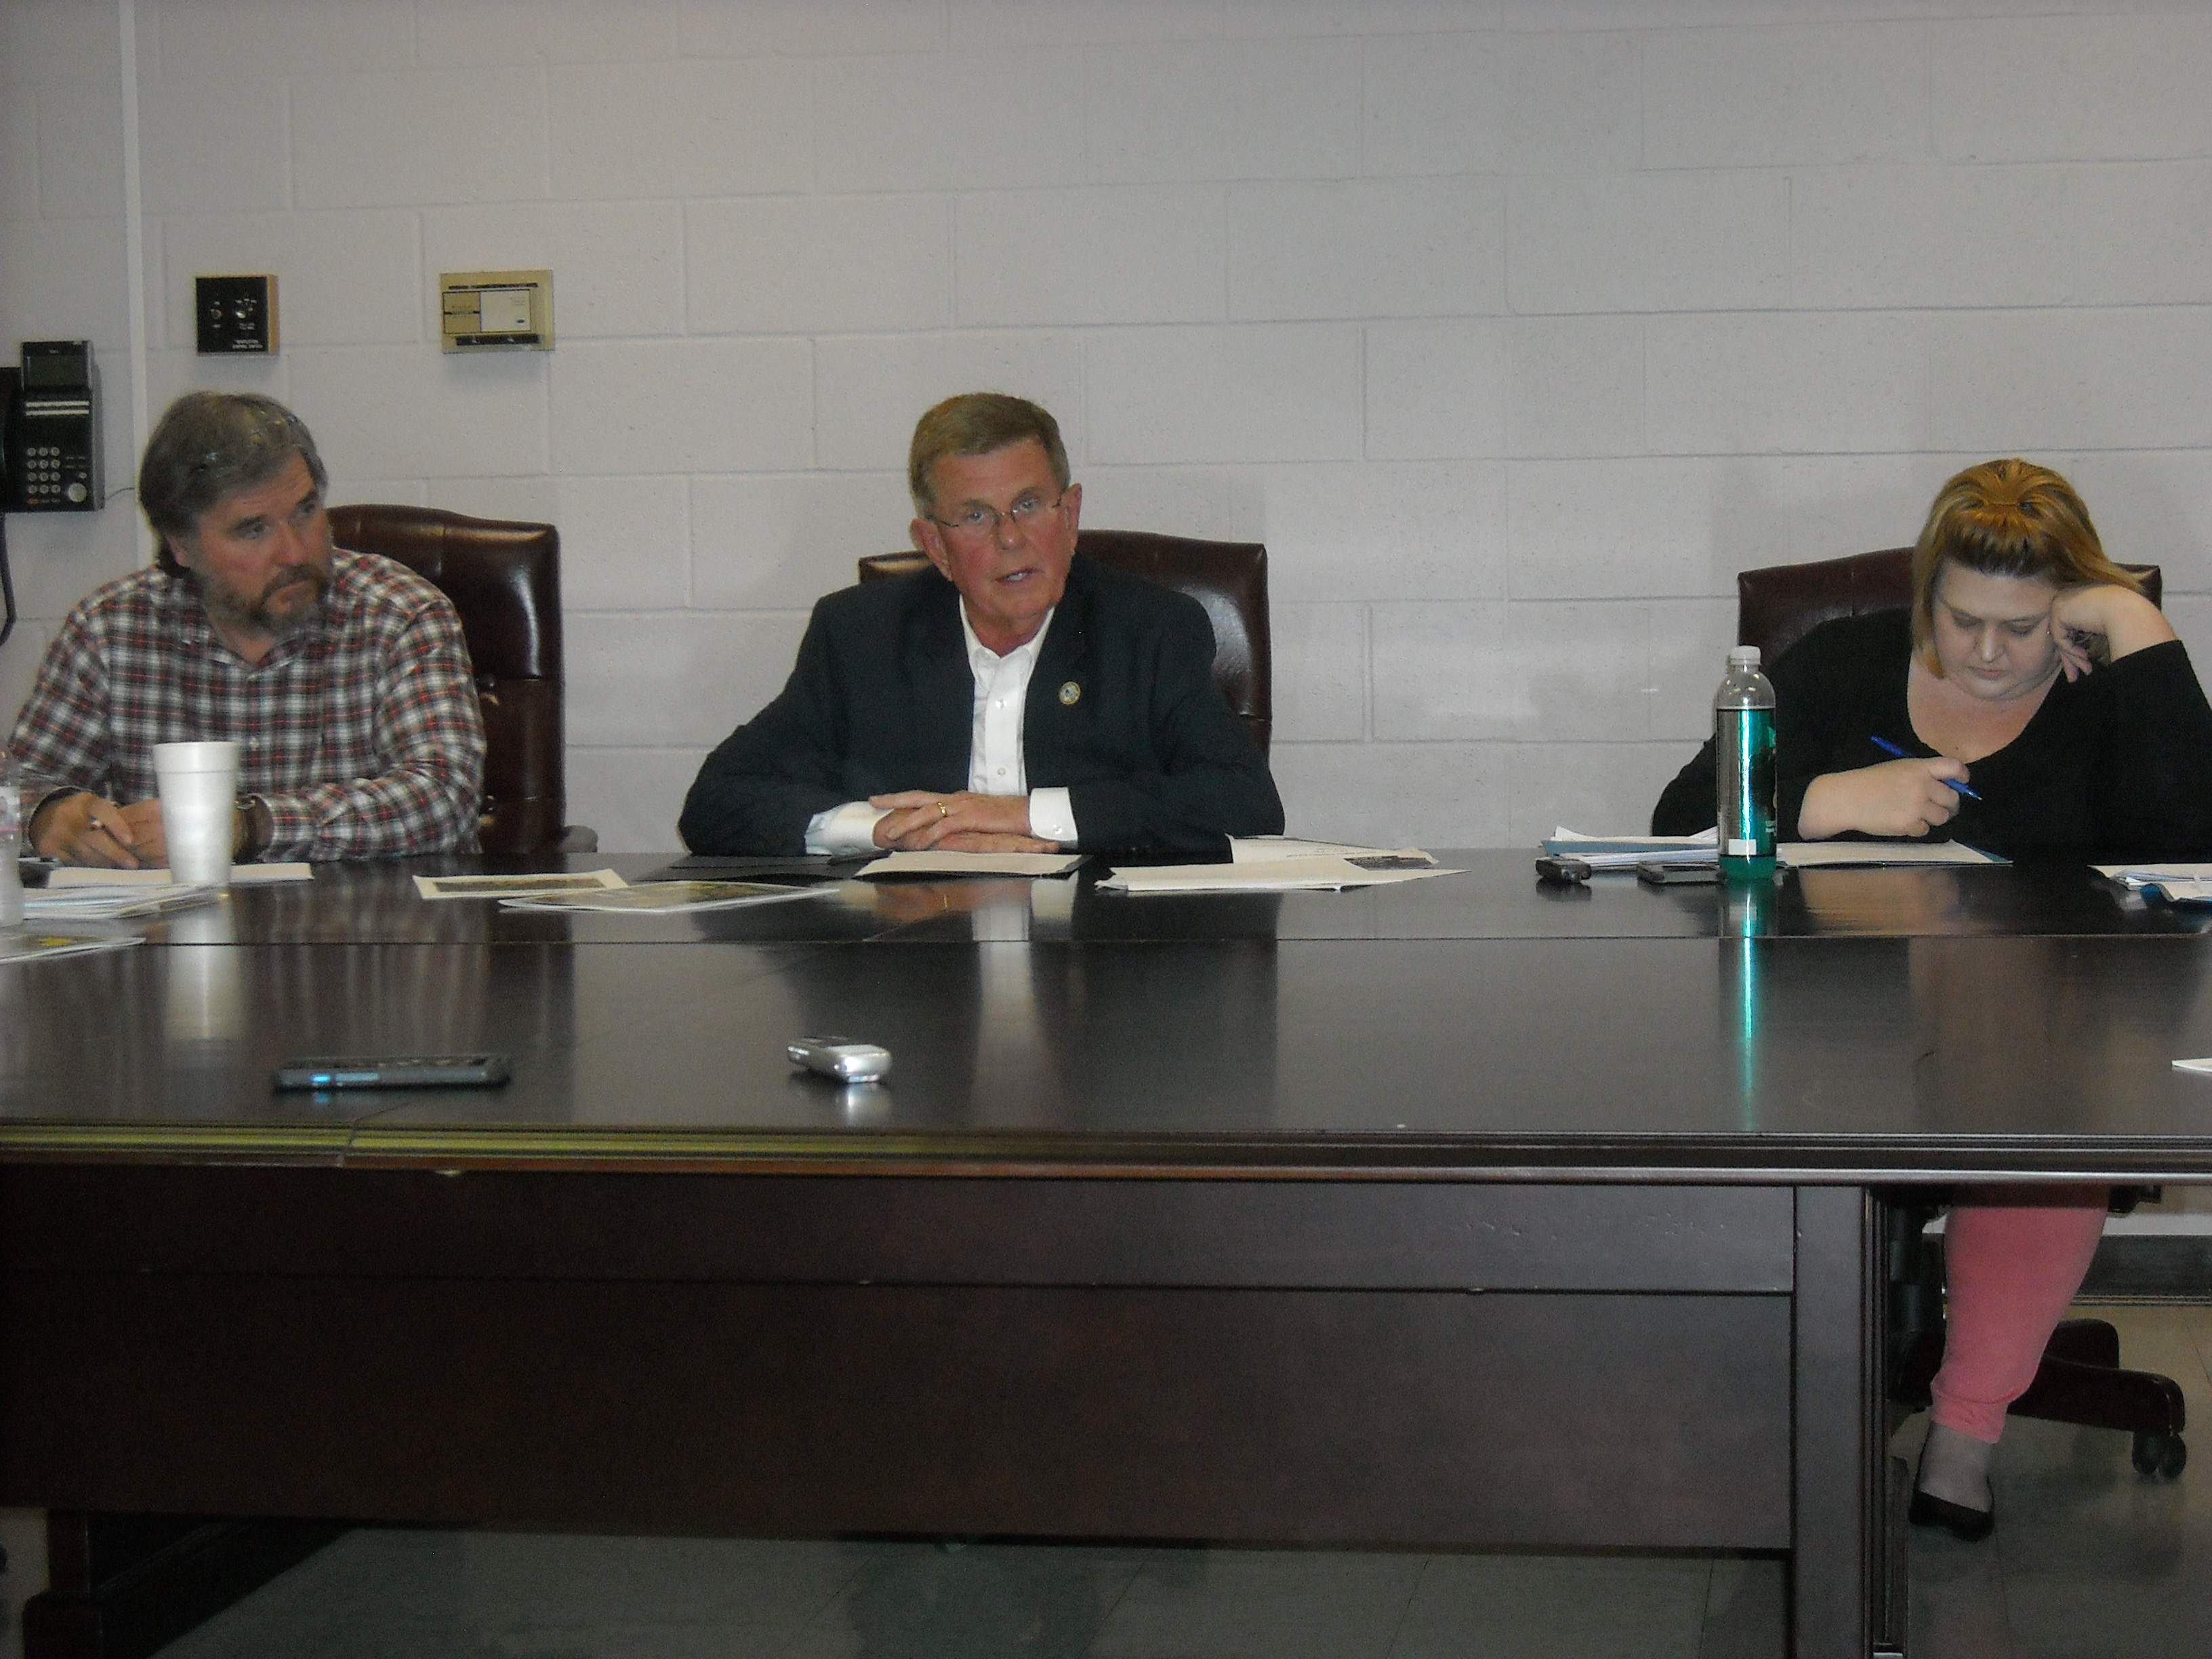 Benton Mayor Fred Kondritz addresses an issue during a city council meeting held Monday night at city hall.